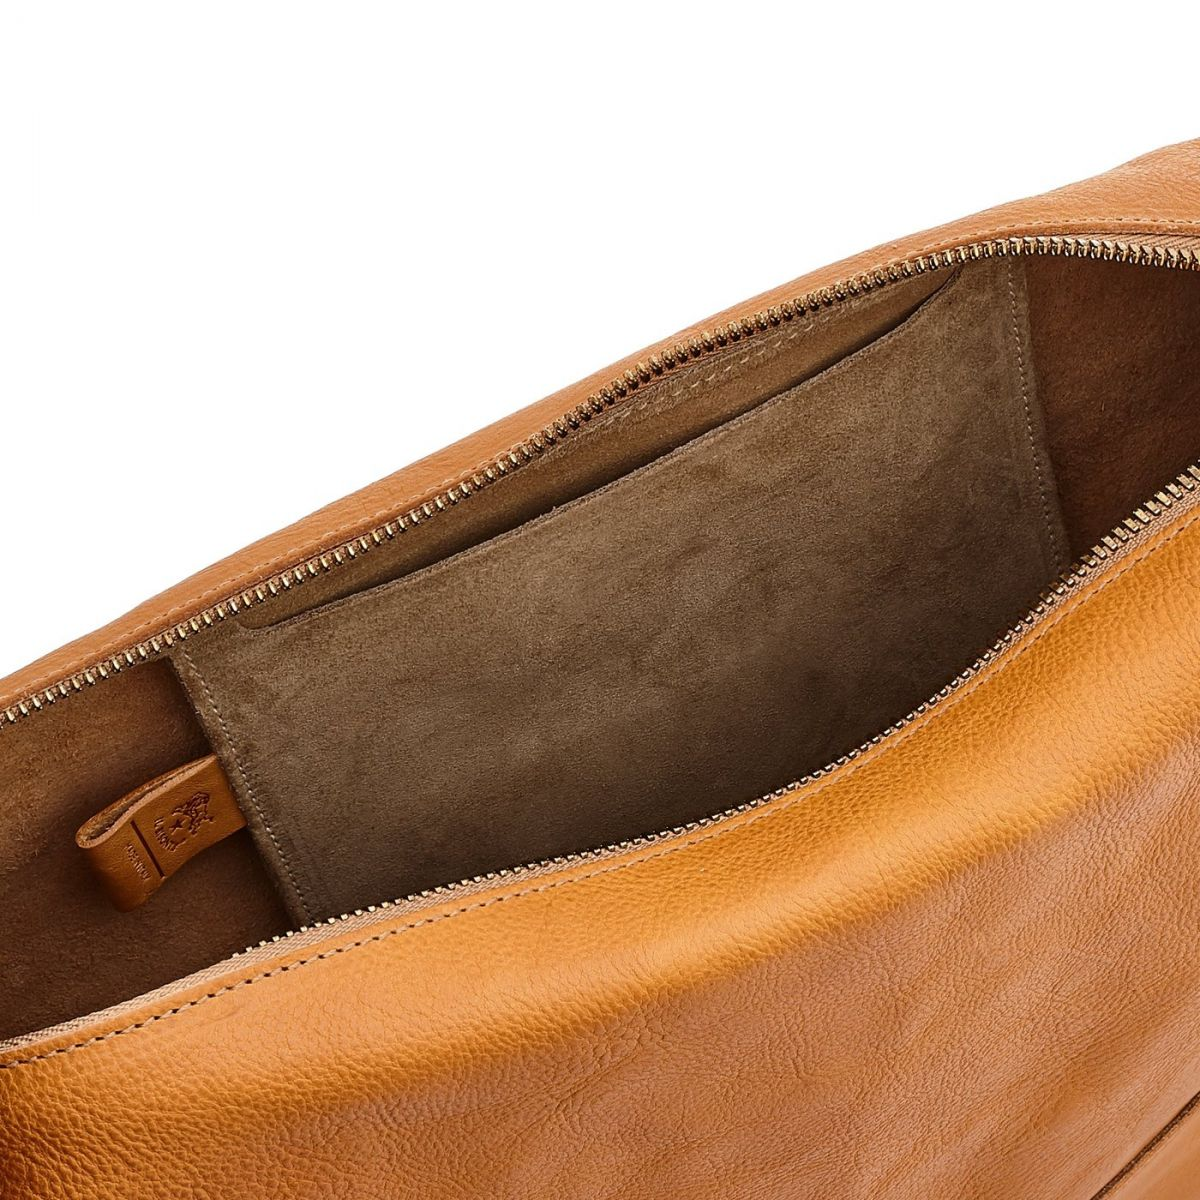 Women's Shoulder Bag Pantelleria in Vintage Cowhide Leather BSH081 color Natural | Details